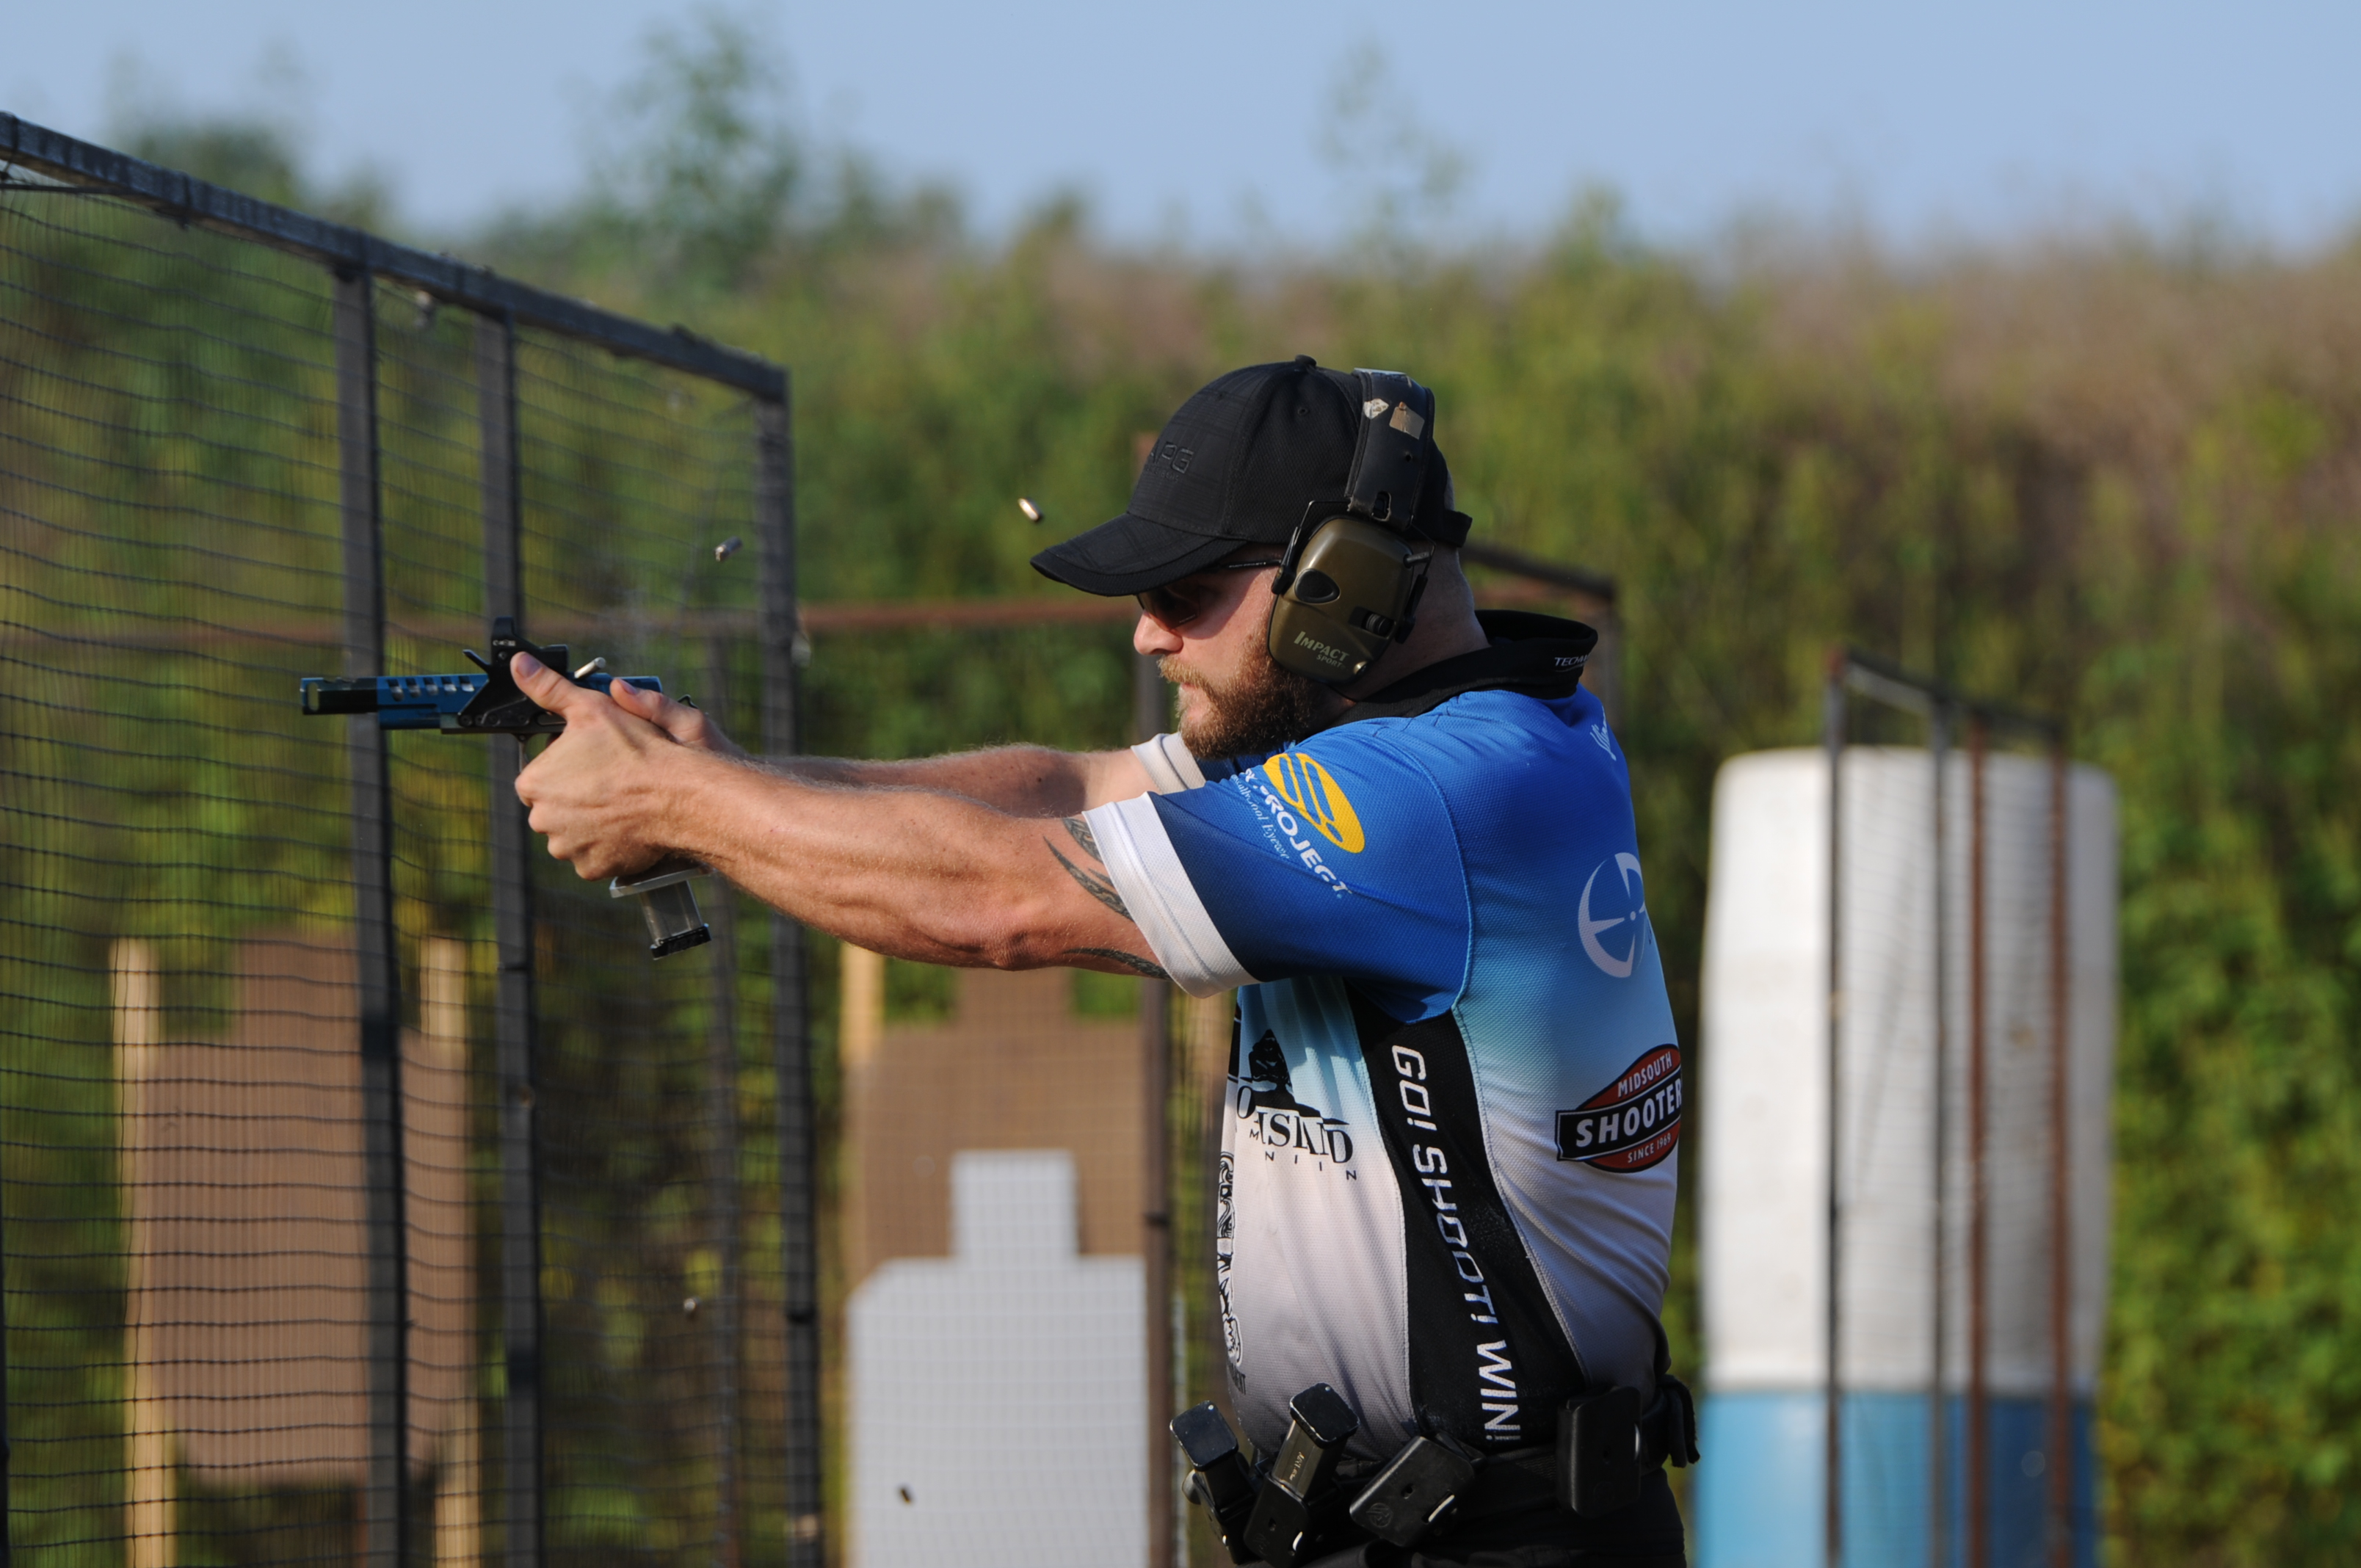 Shell Shock Technologies Sponsored Shooter John Vlieger Wins Second Consecutive High Overall